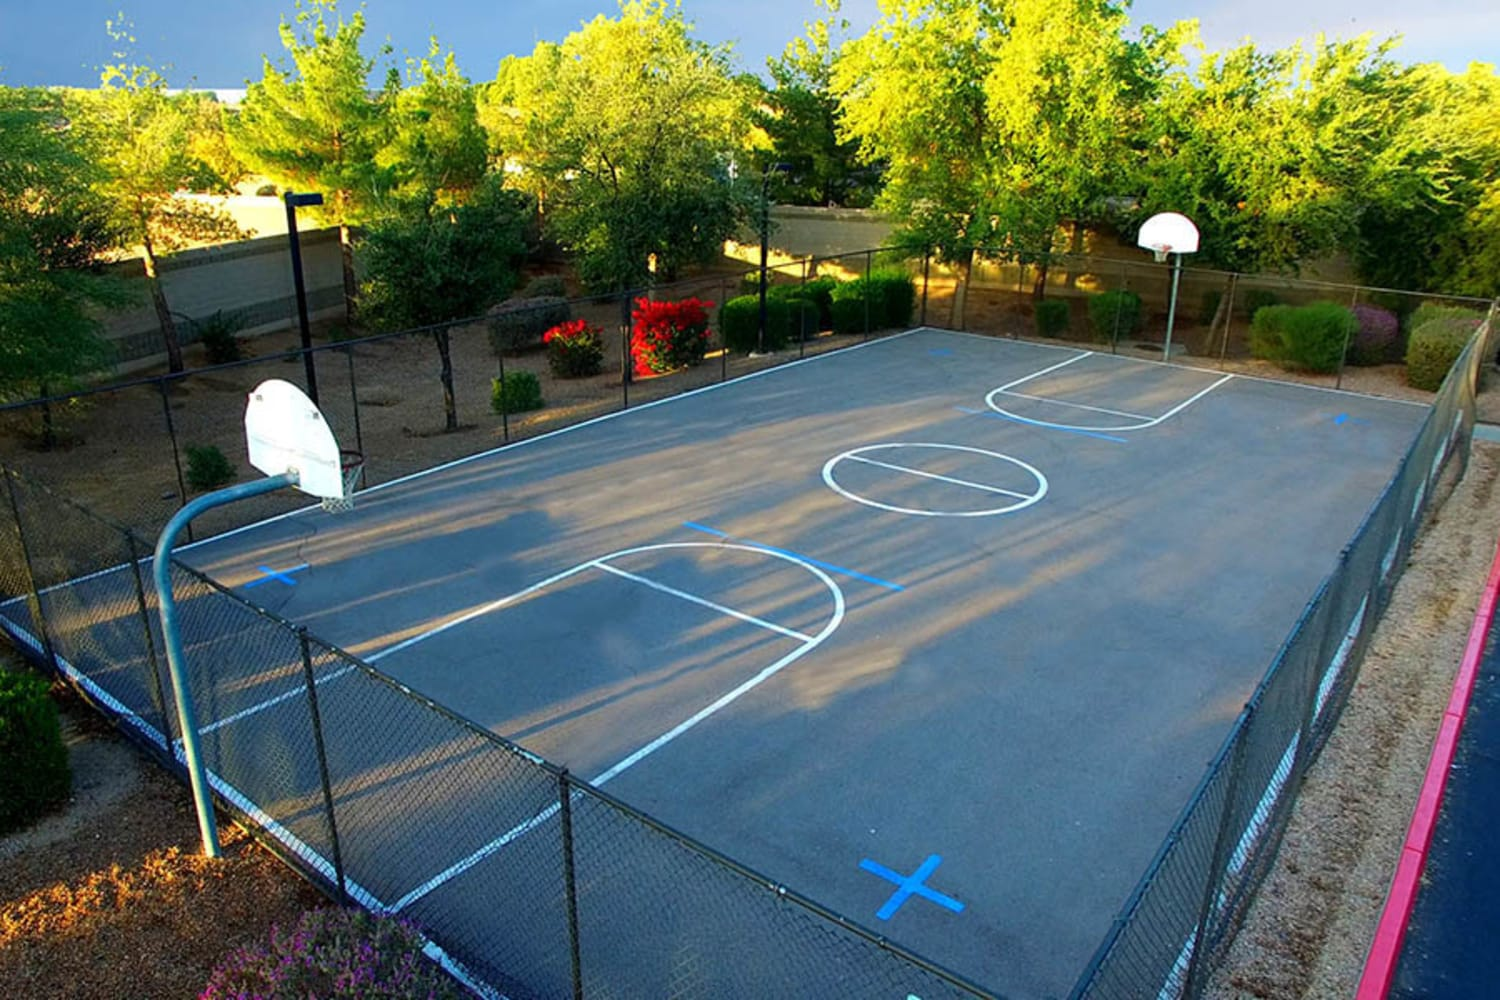 2150 Arizona Ave South in Chandler, Arizona, offers a basketball court